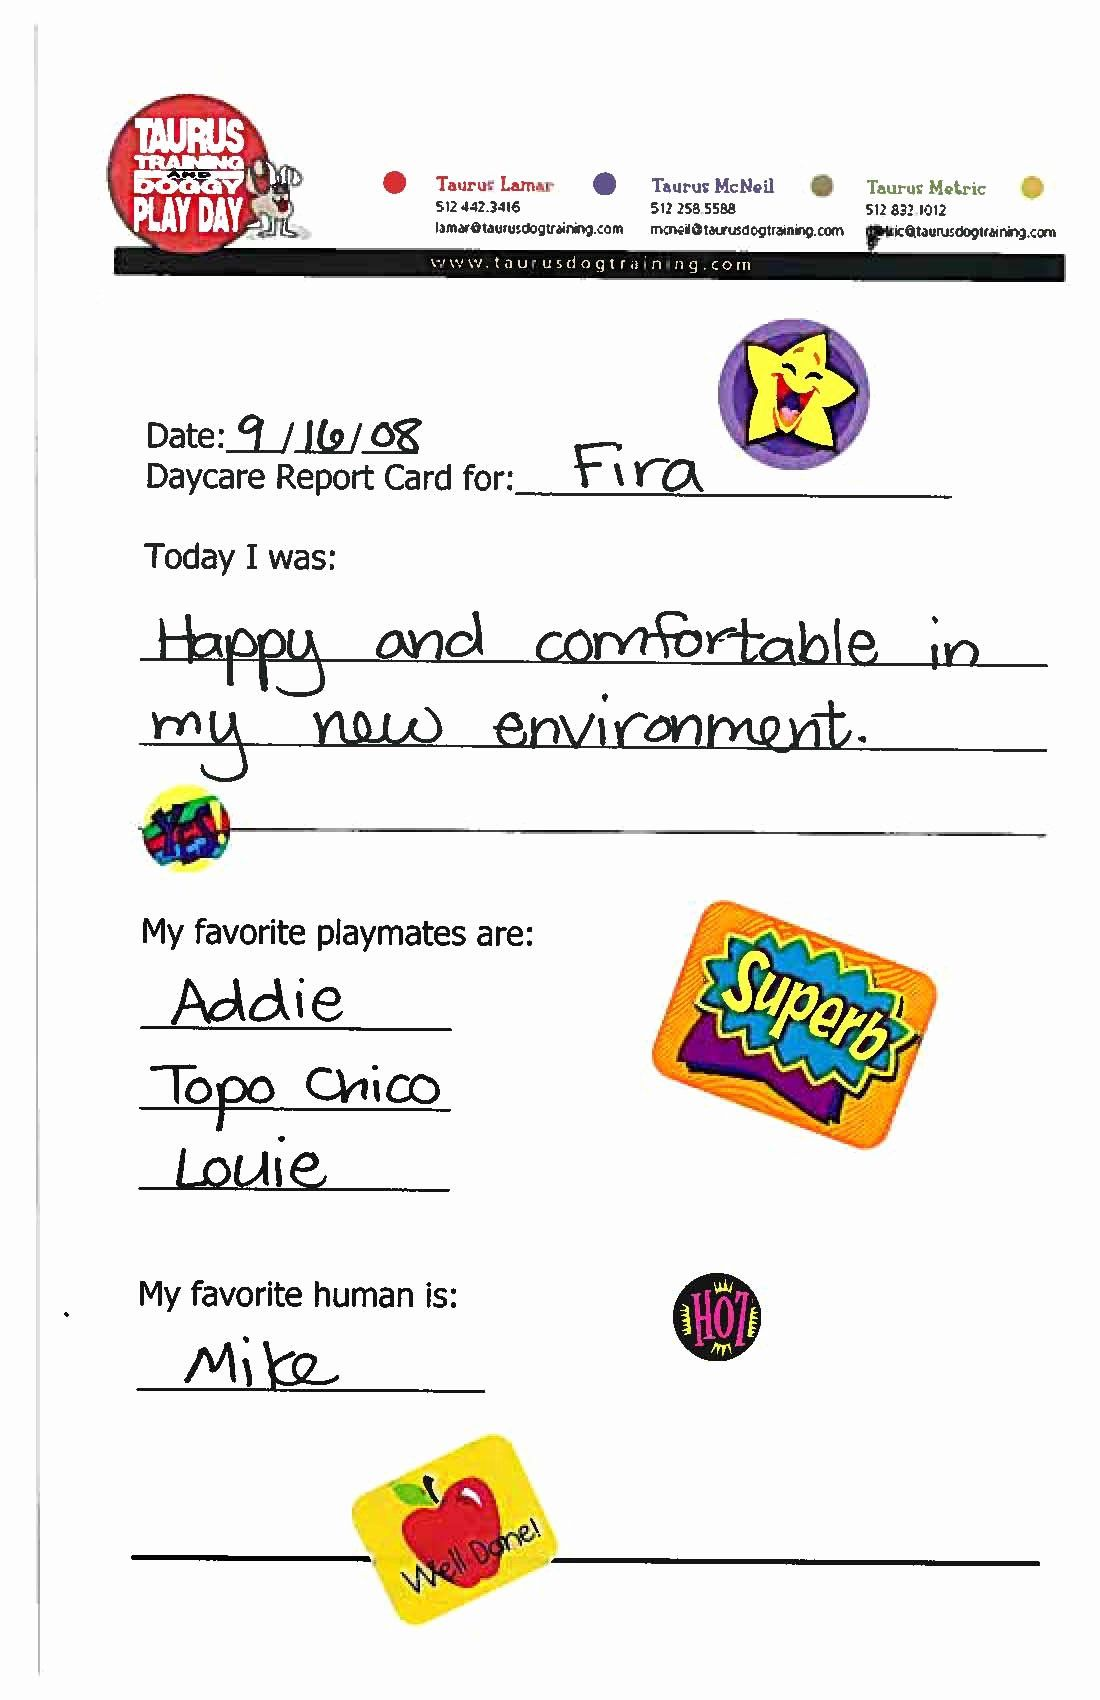 Dog Boarding Report Card Template Inspirational 21 Of Doggy Daycare Report Card Template Report Card Template Card Template Dog Daycare